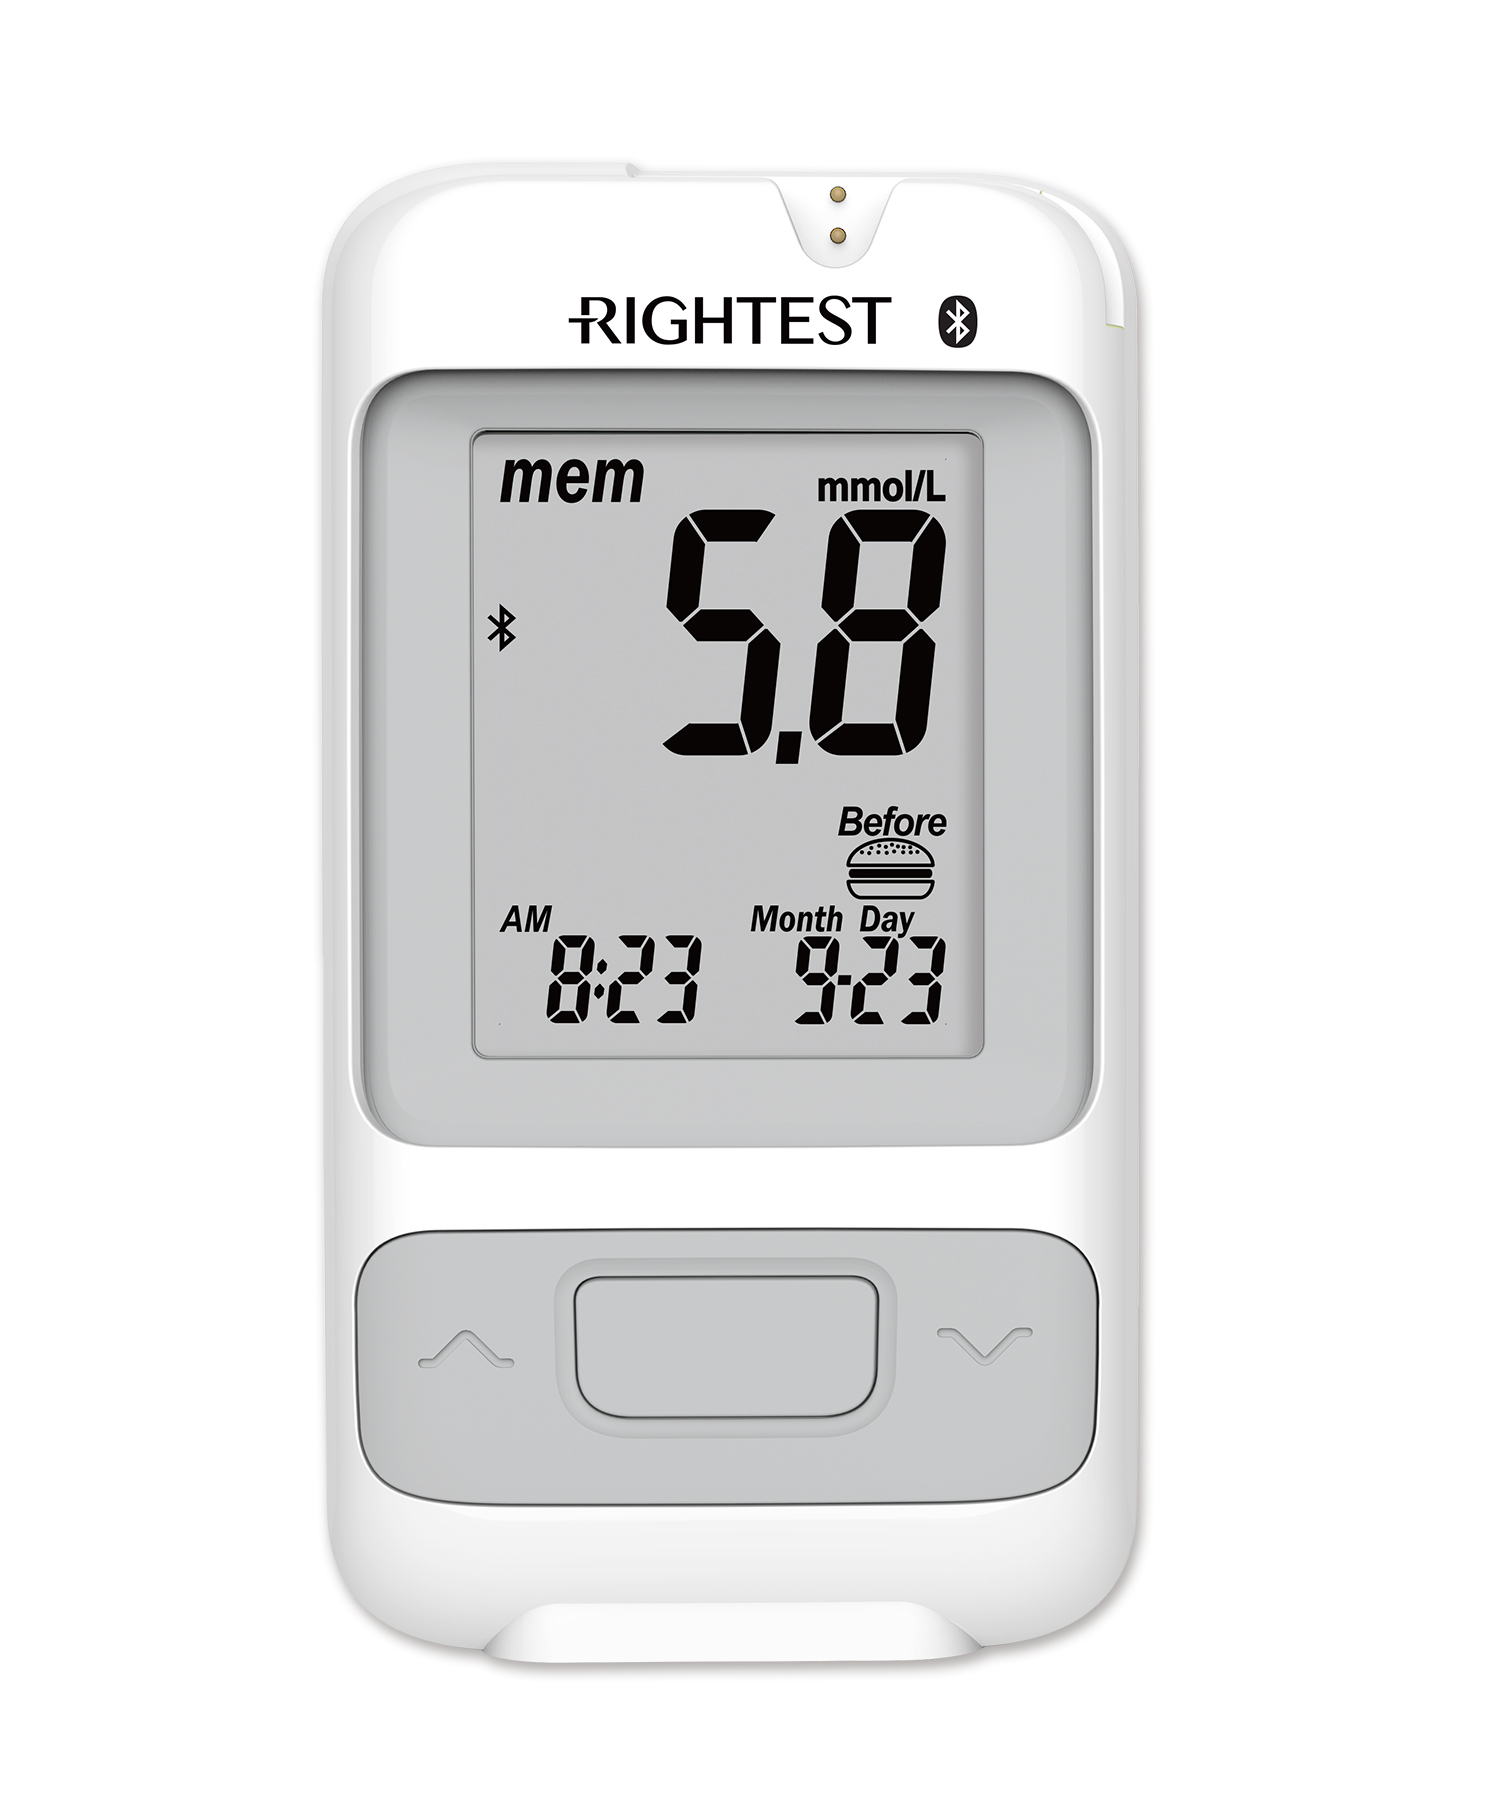 Rightest Gm700sb Bluetooth Blood Glucose Monitoring Systems